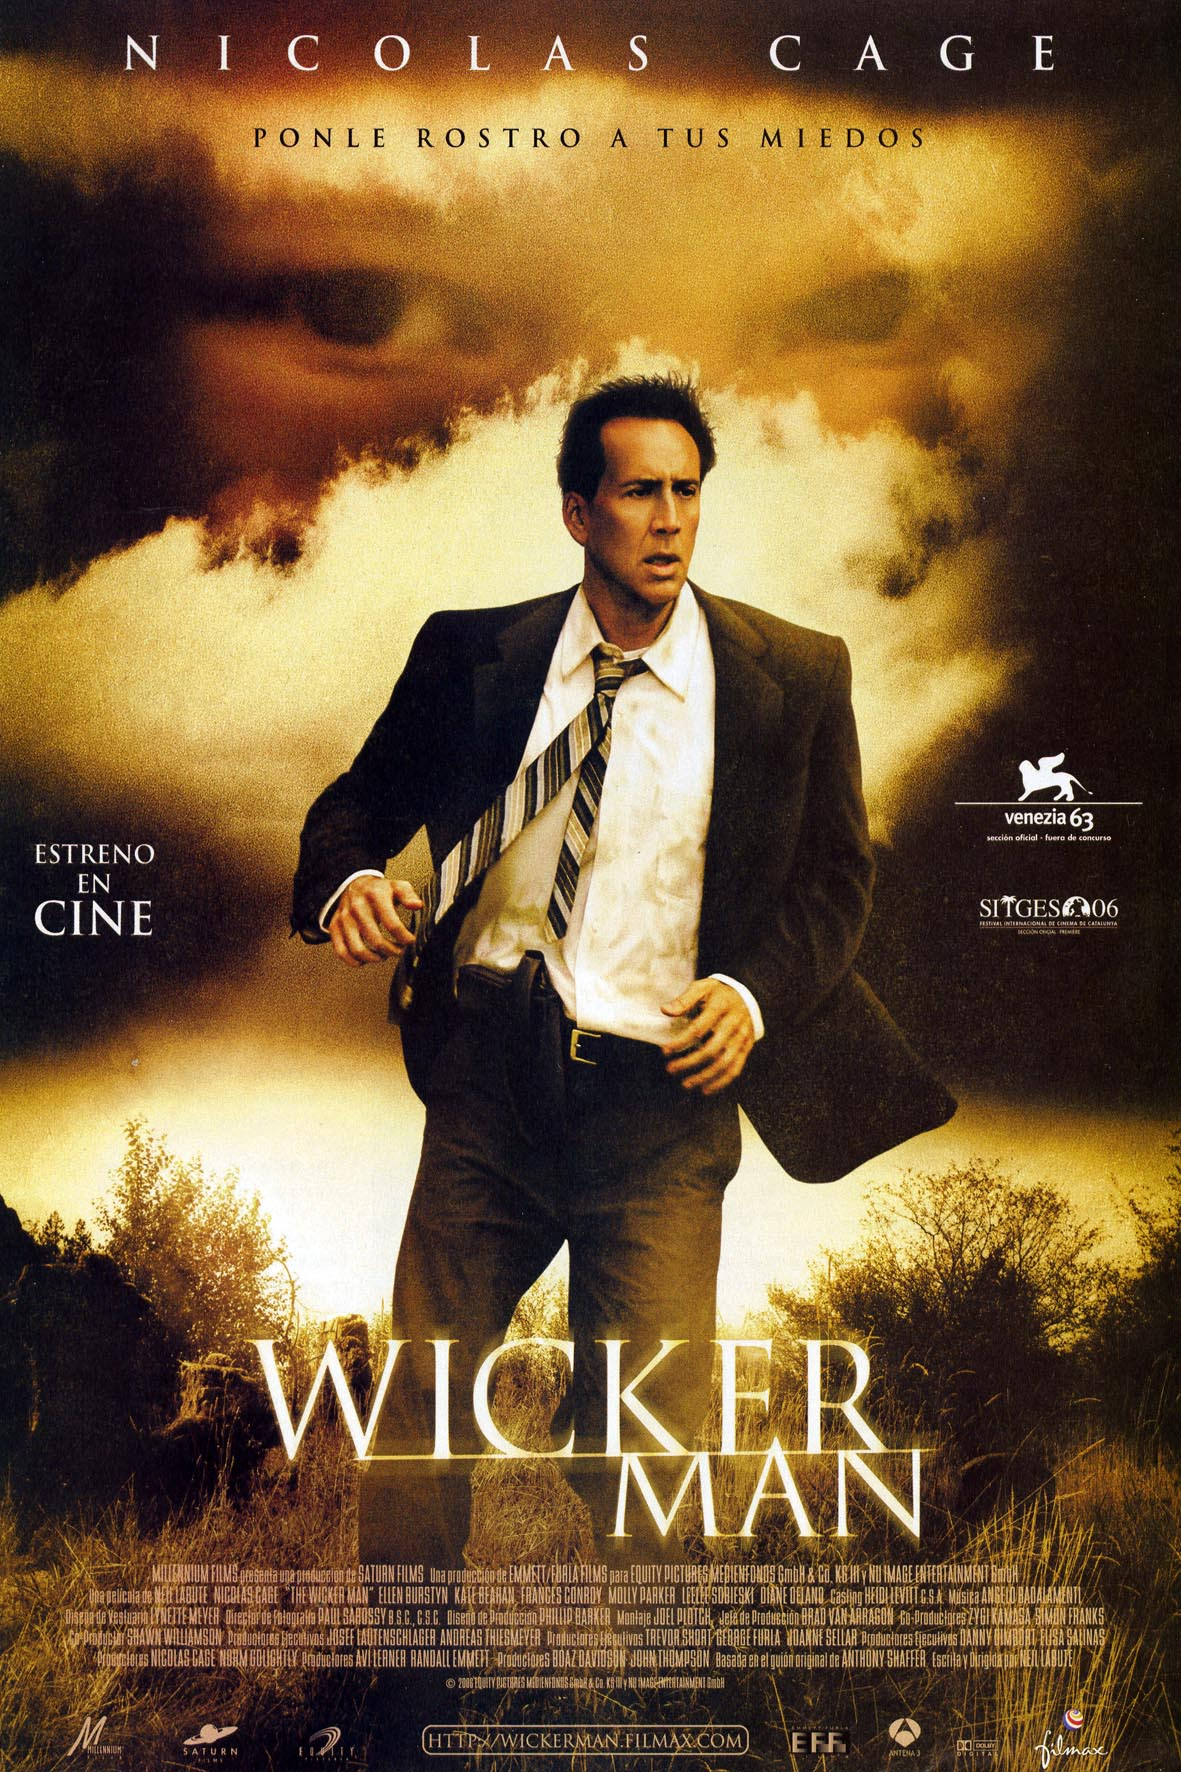 Wicker Man (2006)